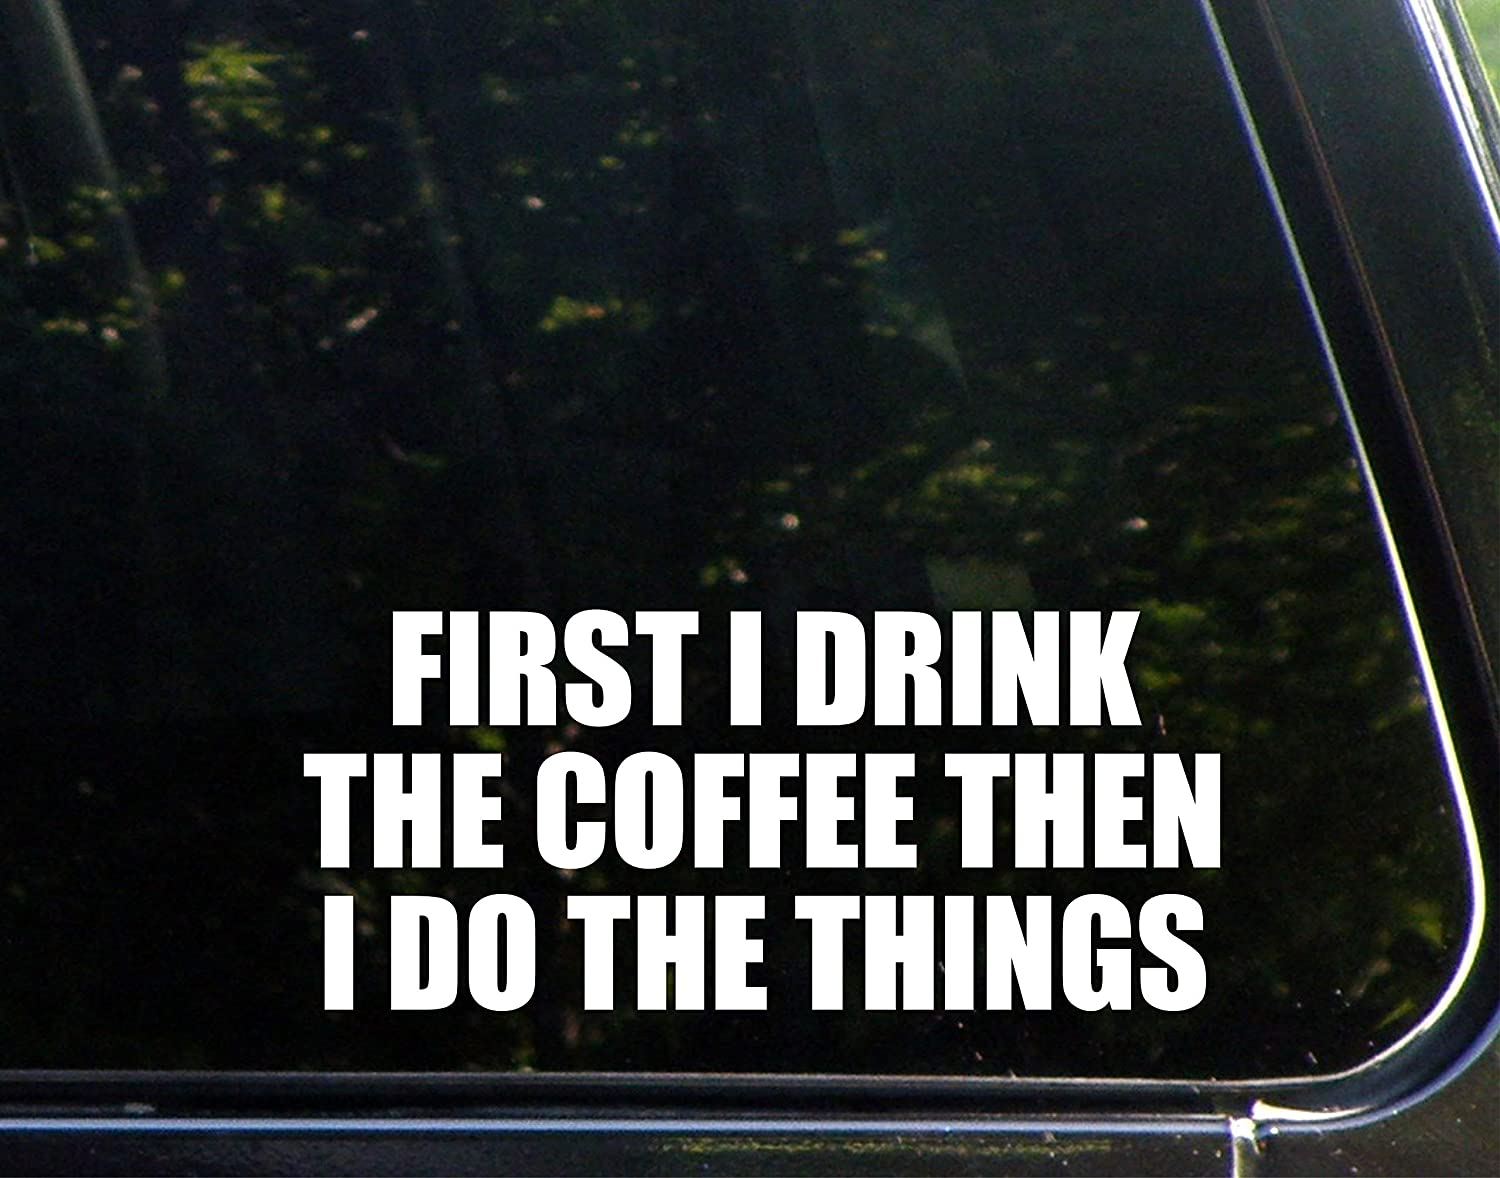 "Diamond Graphics First I Drink The Coffee Then I Do The Things (8-1/2"" x 3-3/4"") Die Cut Decal Bumper Sticker for Windows, Cars, Trucks, Laptops, Etc."